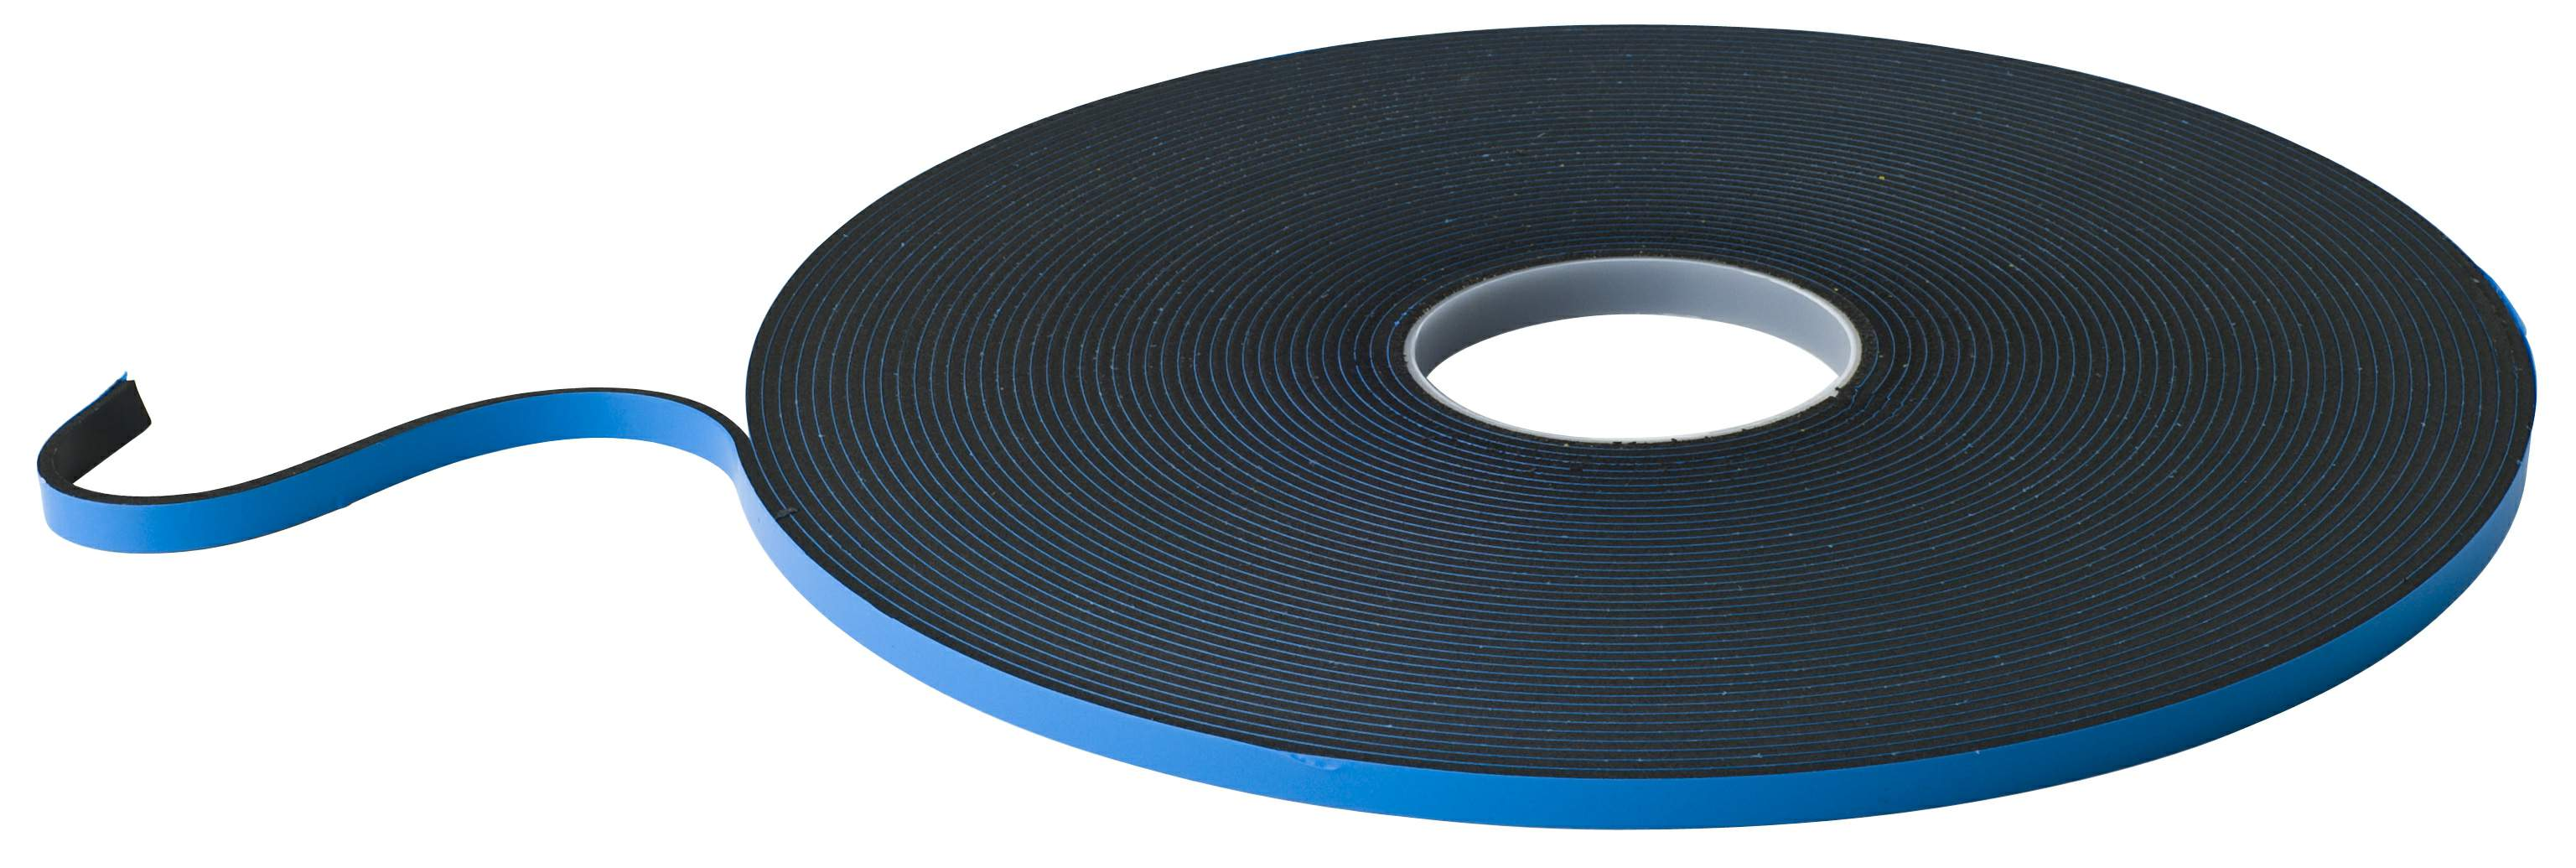 Thumbnail - FOAM TAPE S/S STRUCTURAL 9.5mm X 9mm X 7.6M